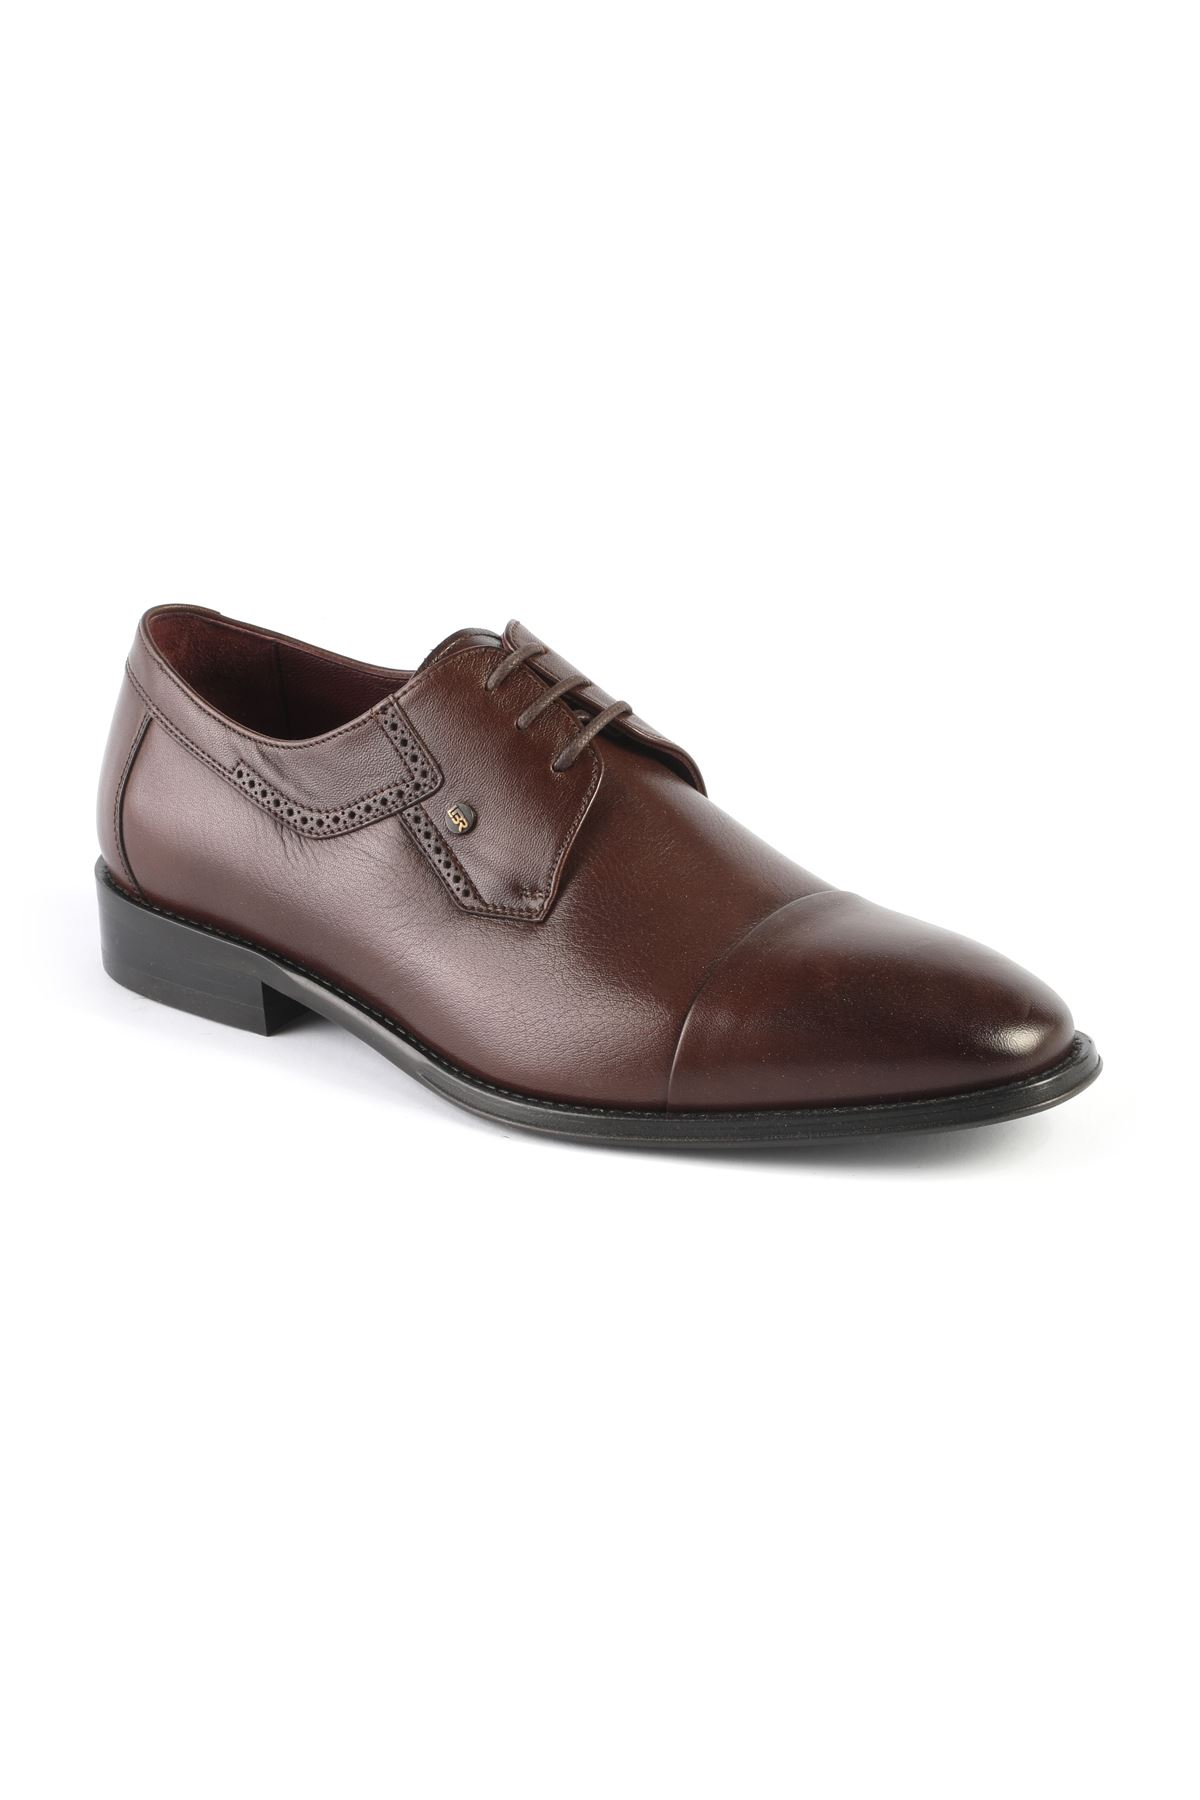 Libero T1238 Brown Classic Shoes